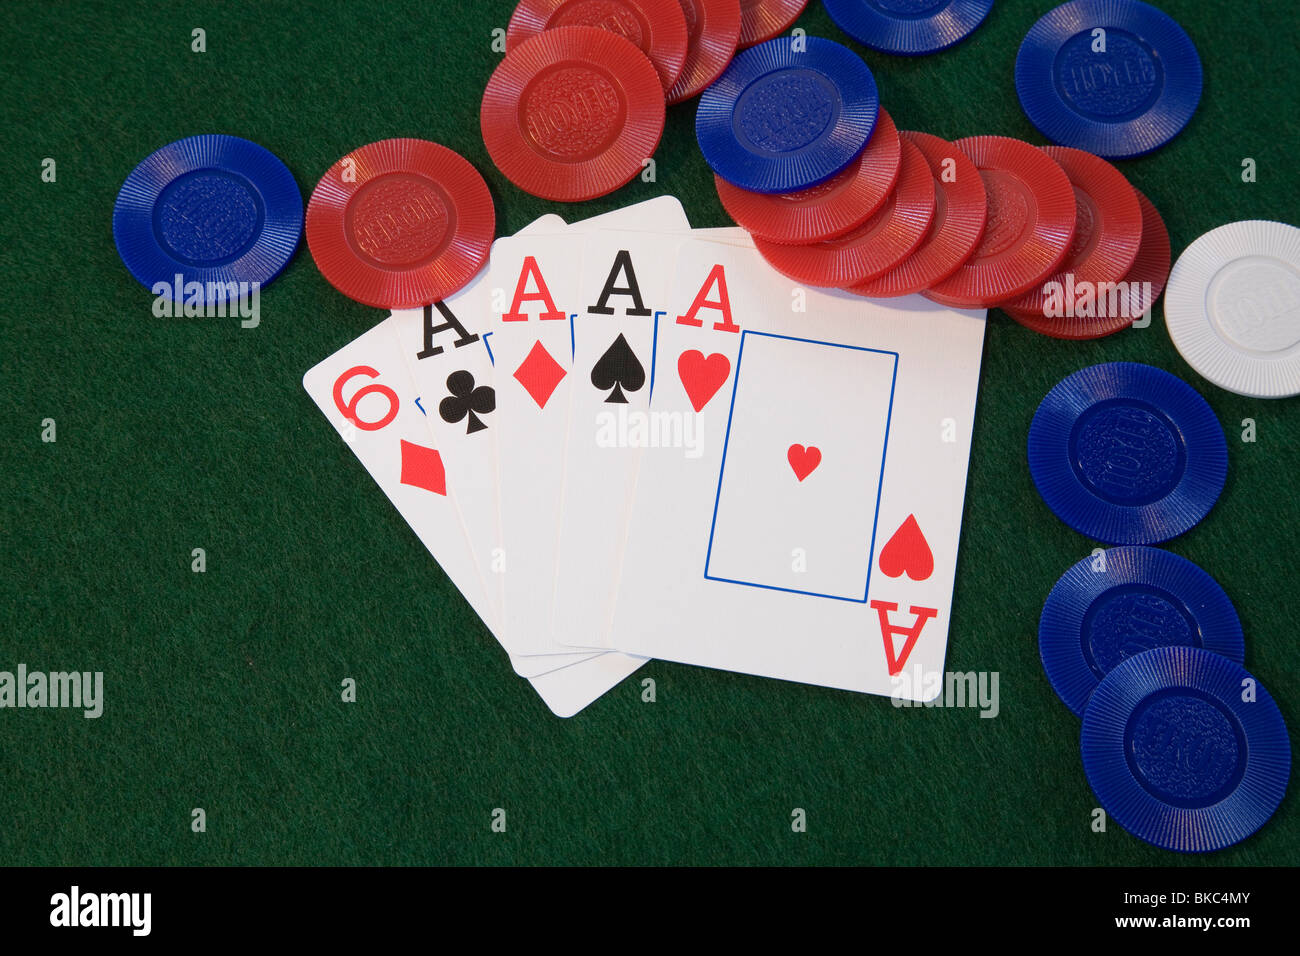 Four aces poker hand in five card draw or stud poker - Stock Image